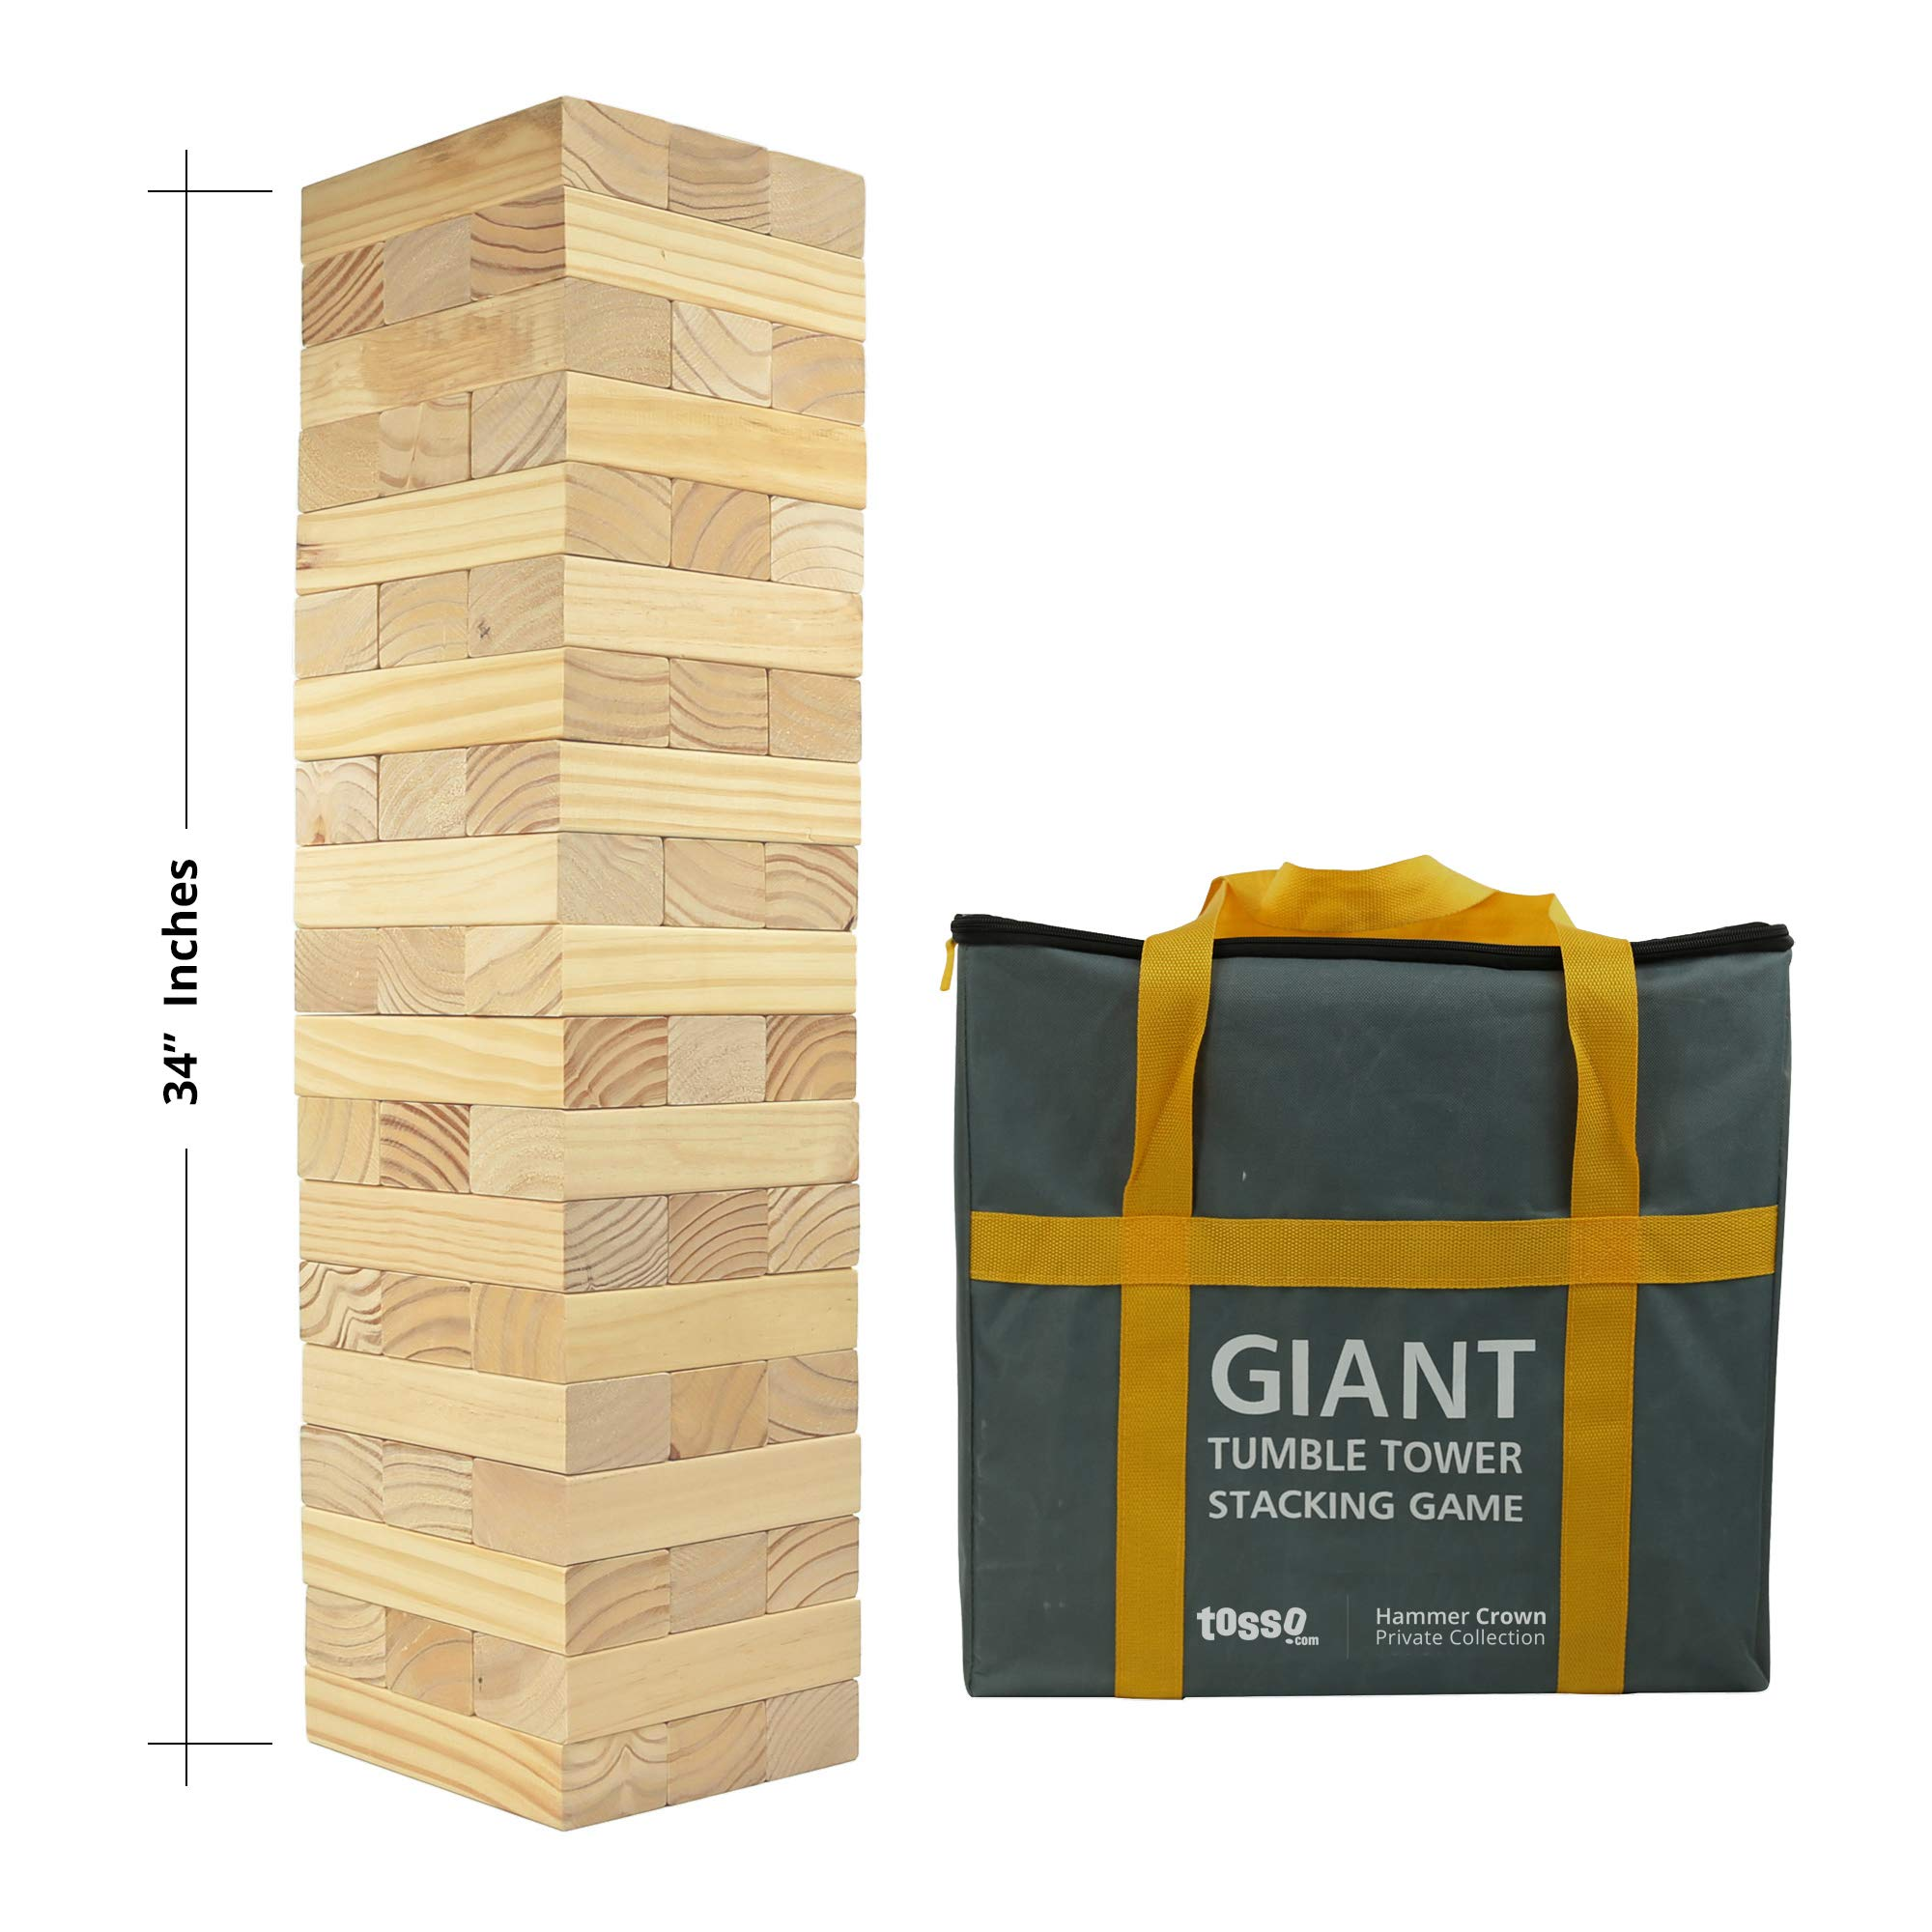 Hammer Crown Giant Tumble Tower V2.0 XXL; with Free Bonus Block Bottle Opener